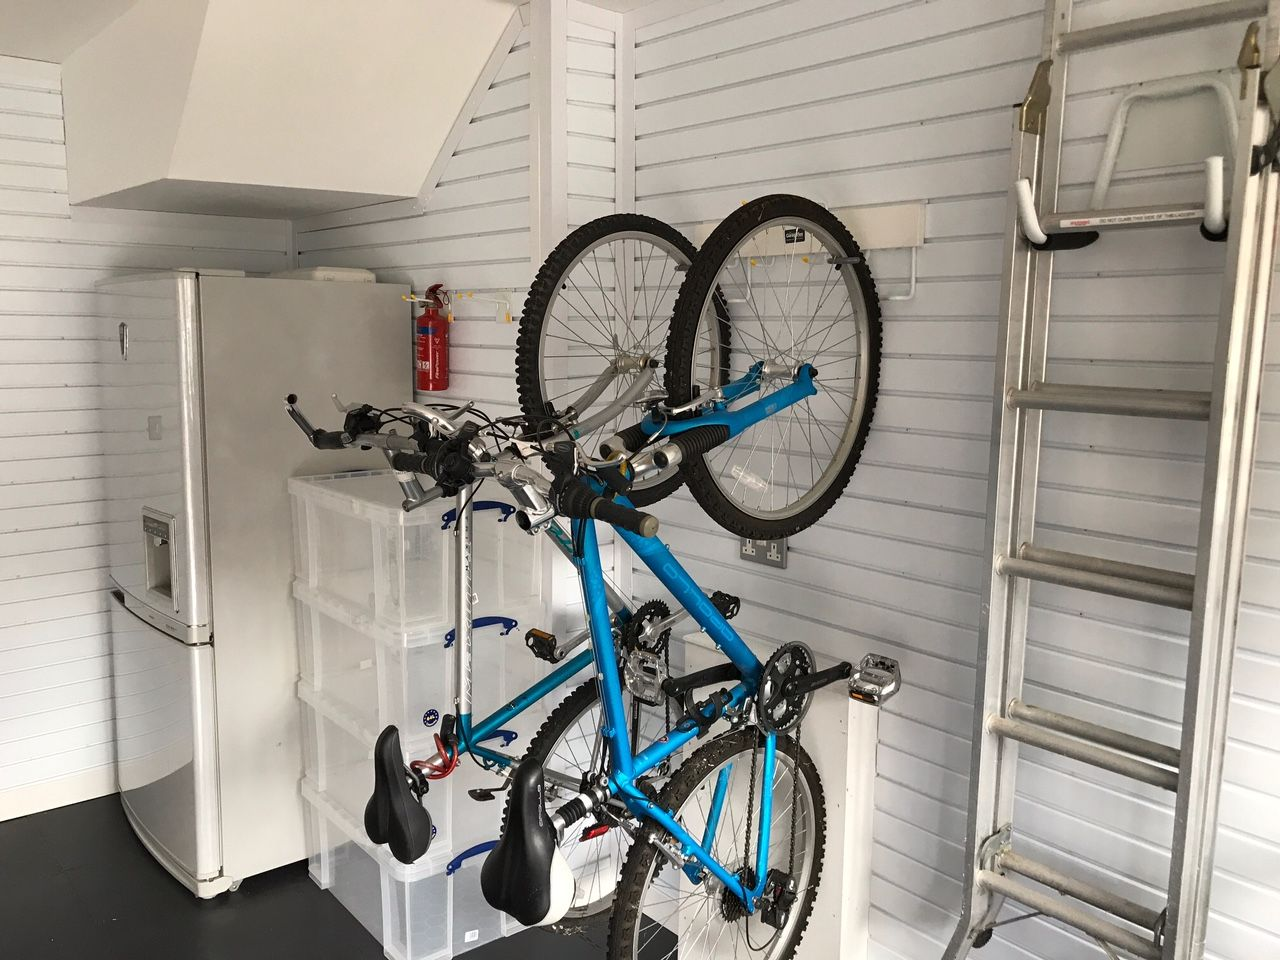 Vertical Bike Rack Storage wall mounted on the garage wall